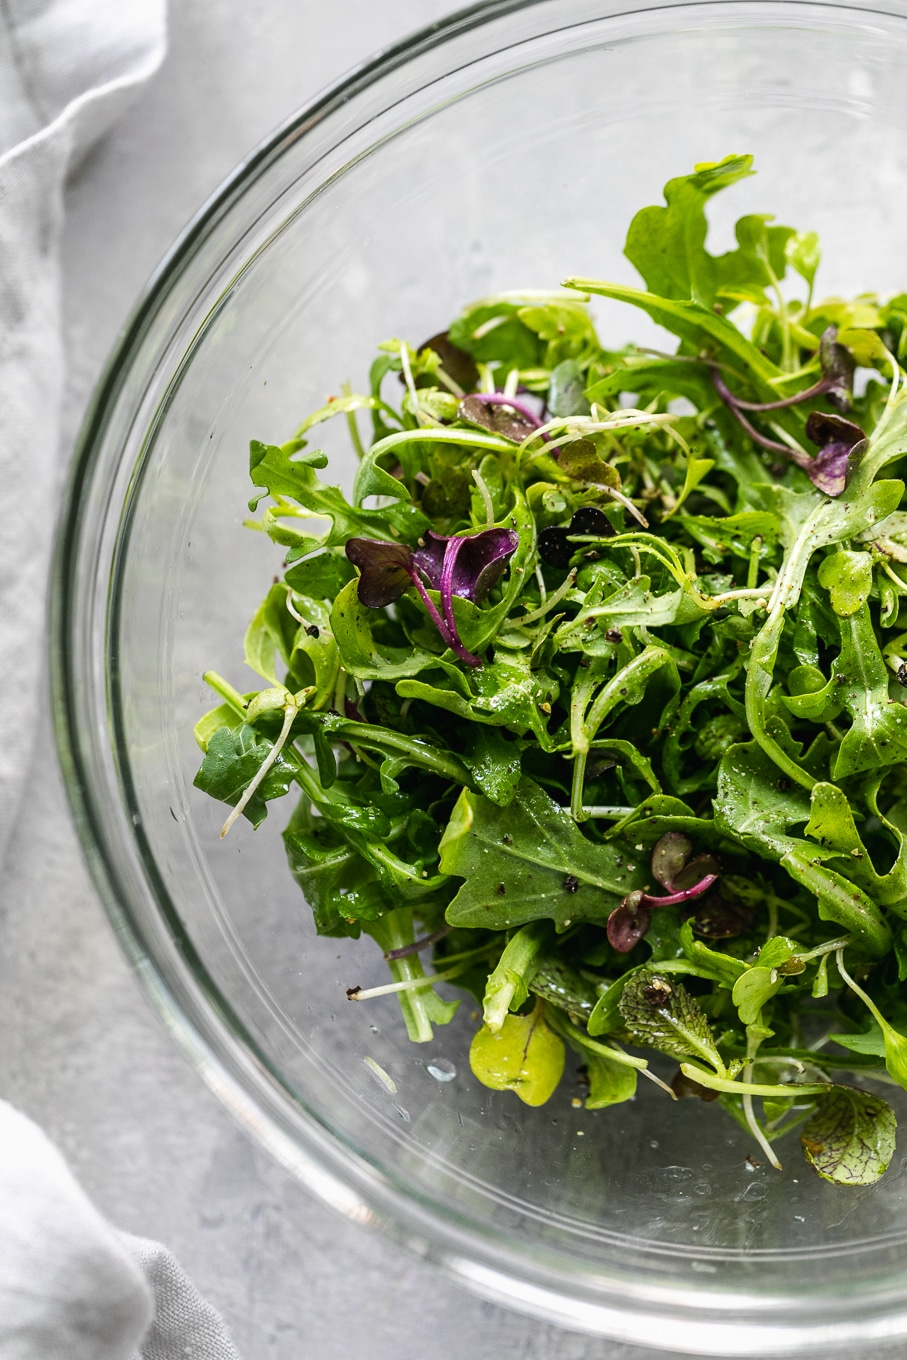 Overhead shot of a bowl of arugula and microgreens